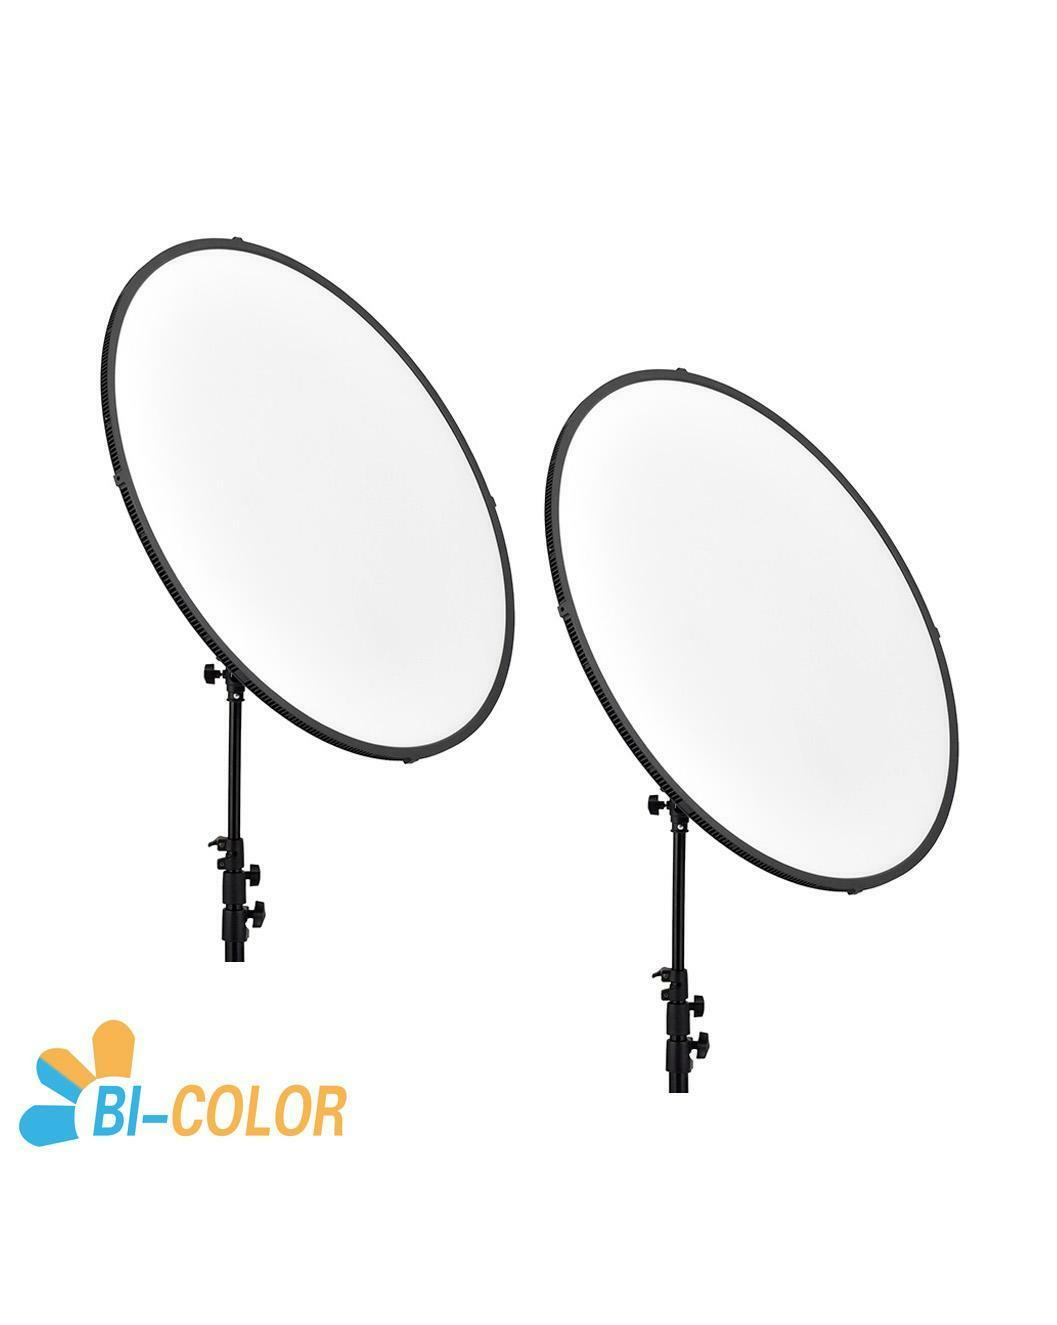 CAME-TV C1500S Bi-Color LED Edge Light (2 Pieces Set) led video light